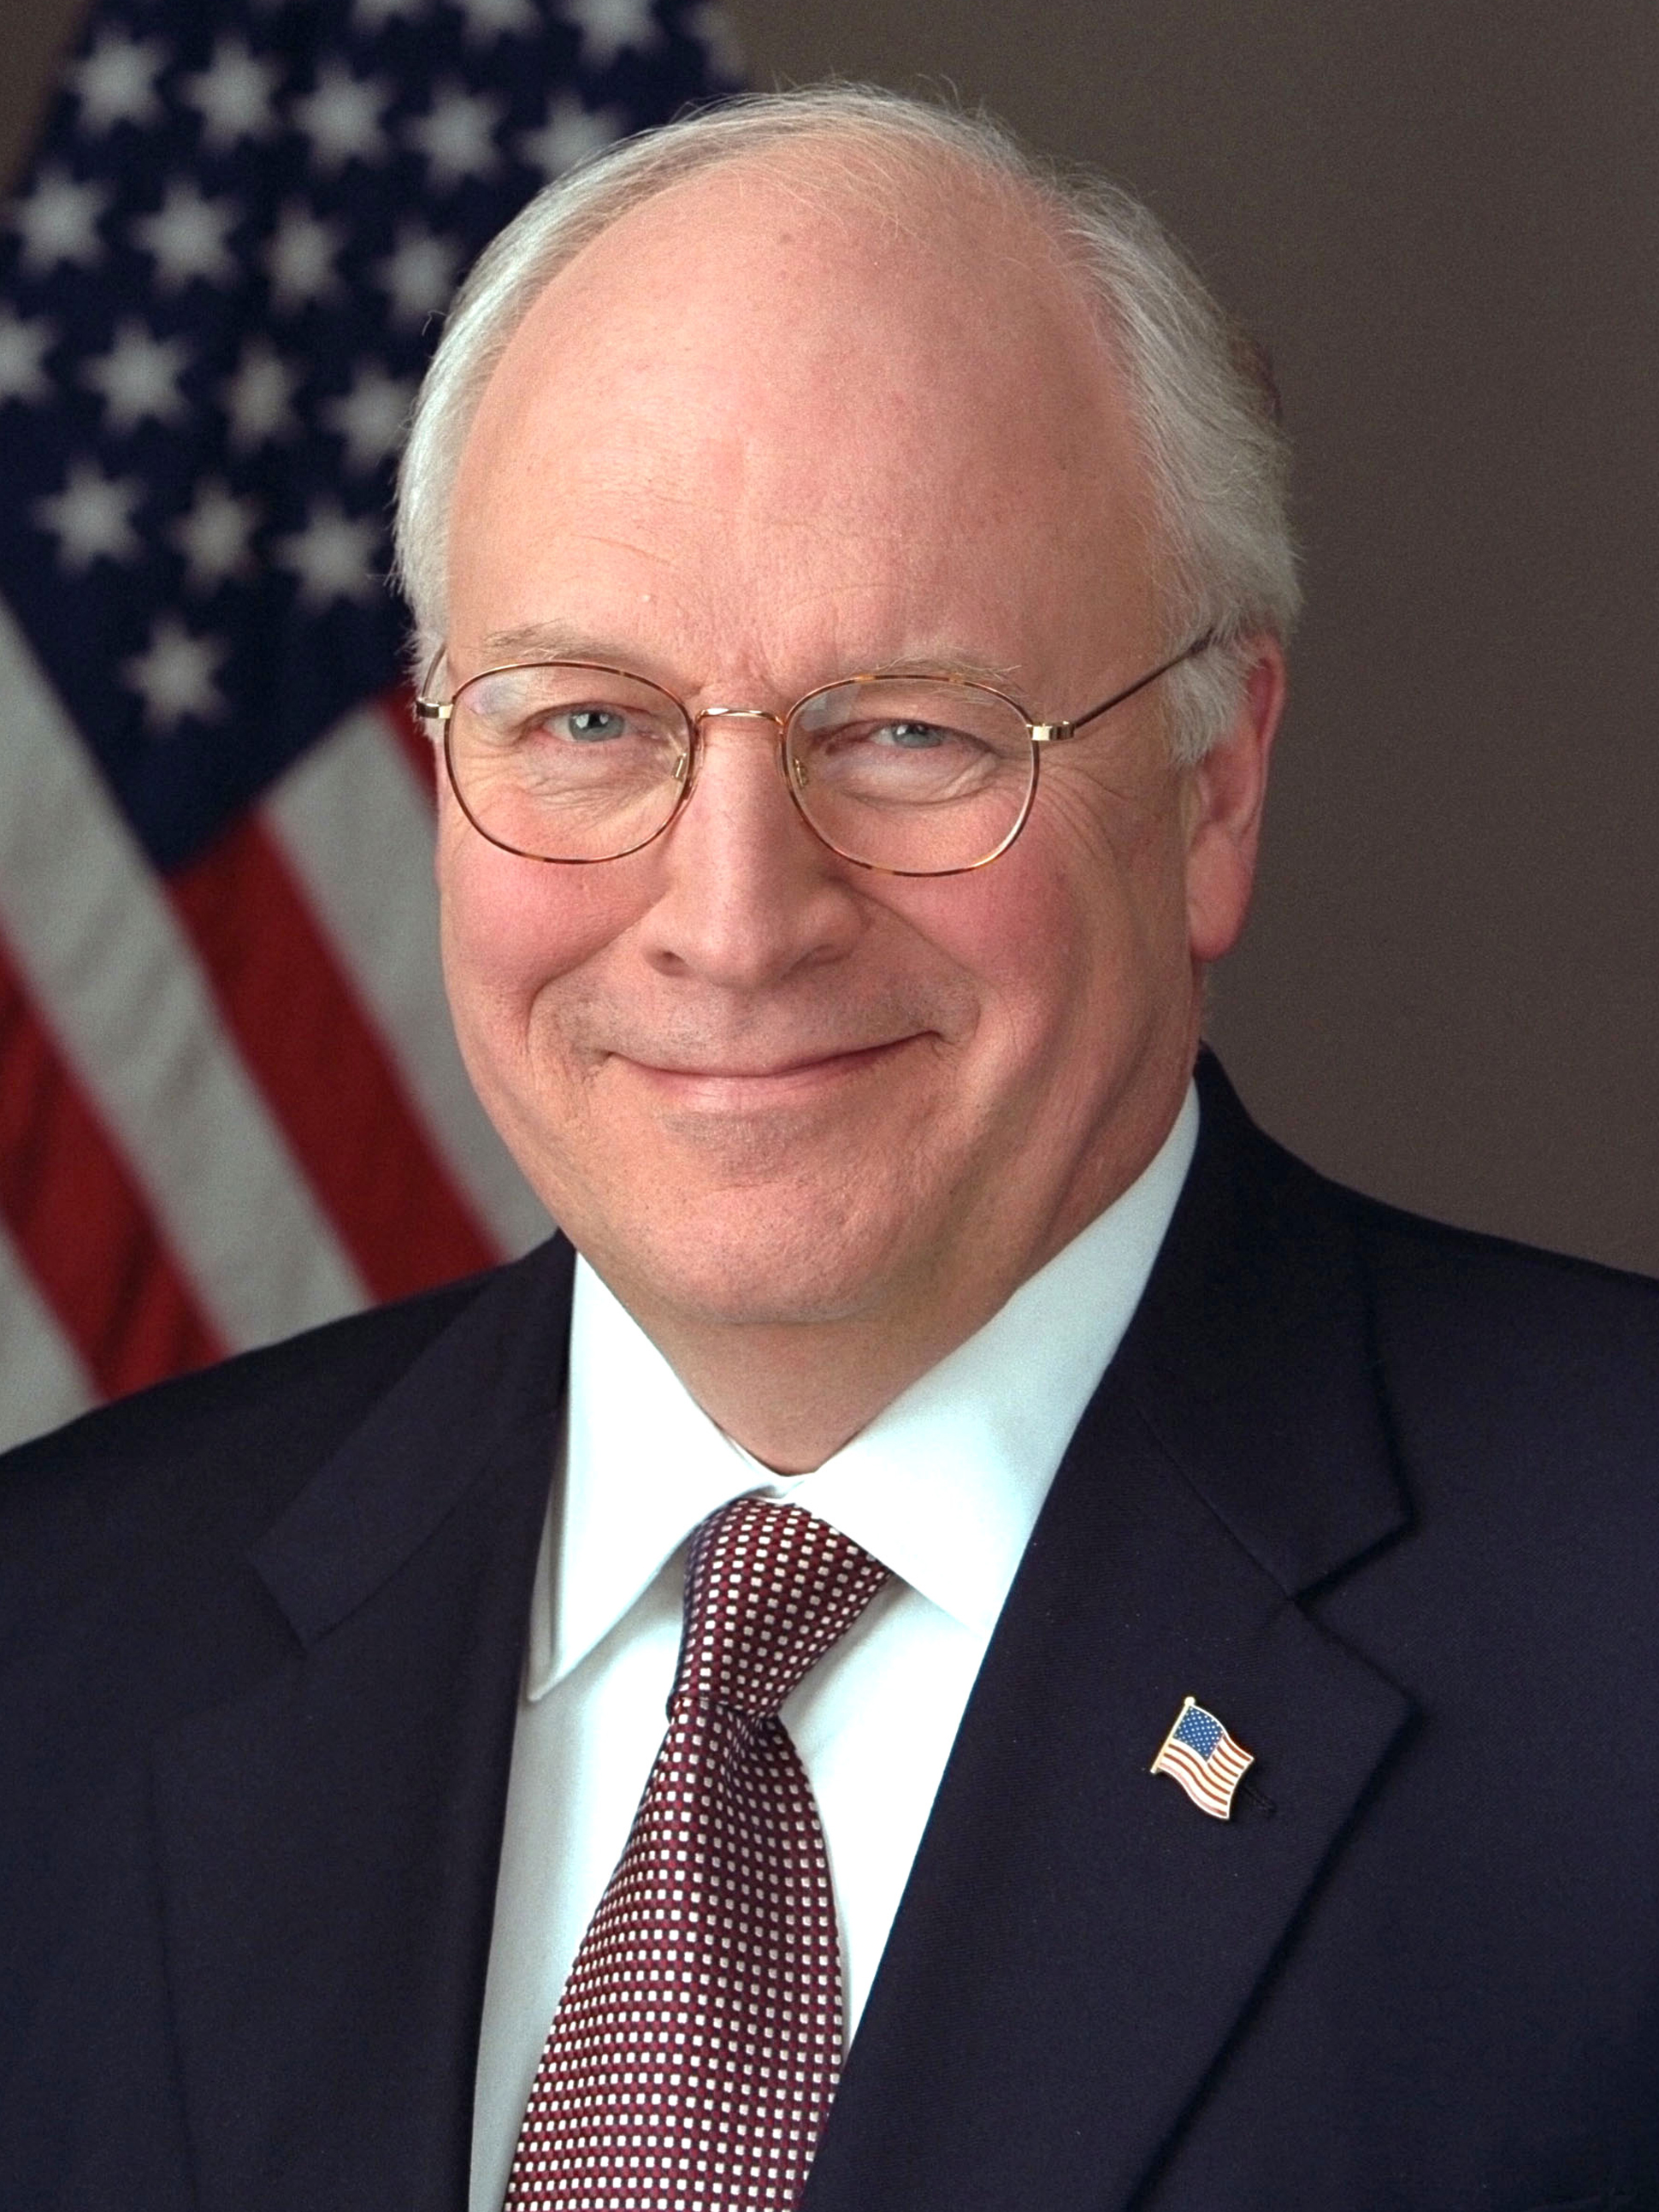 https://i0.wp.com/upload.wikimedia.org/wikipedia/commons/8/88/46_Dick_Cheney_3x4.jpg